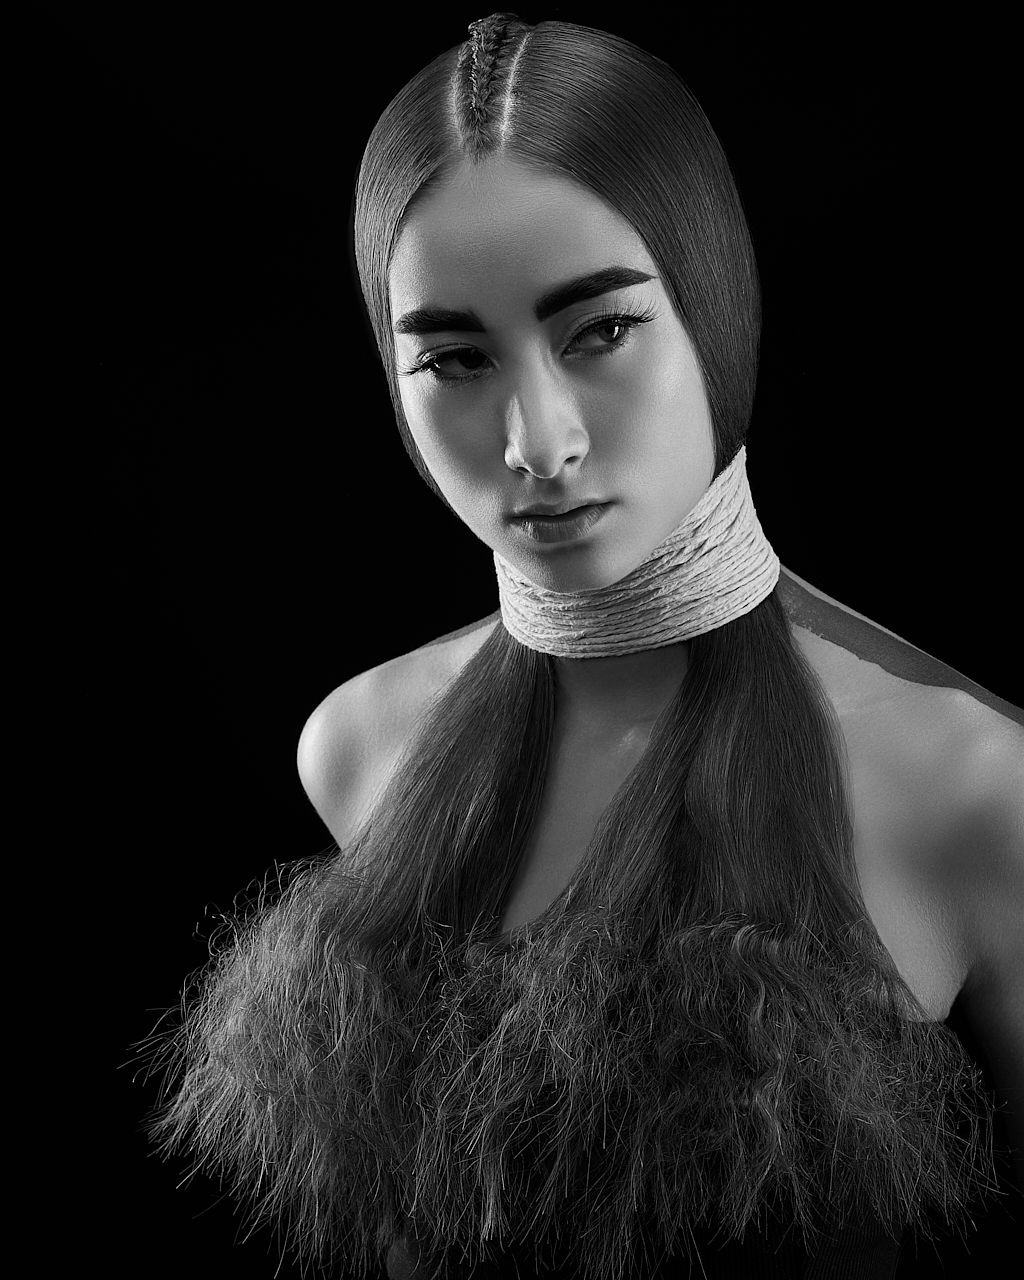 High end competition hair photography in black and white